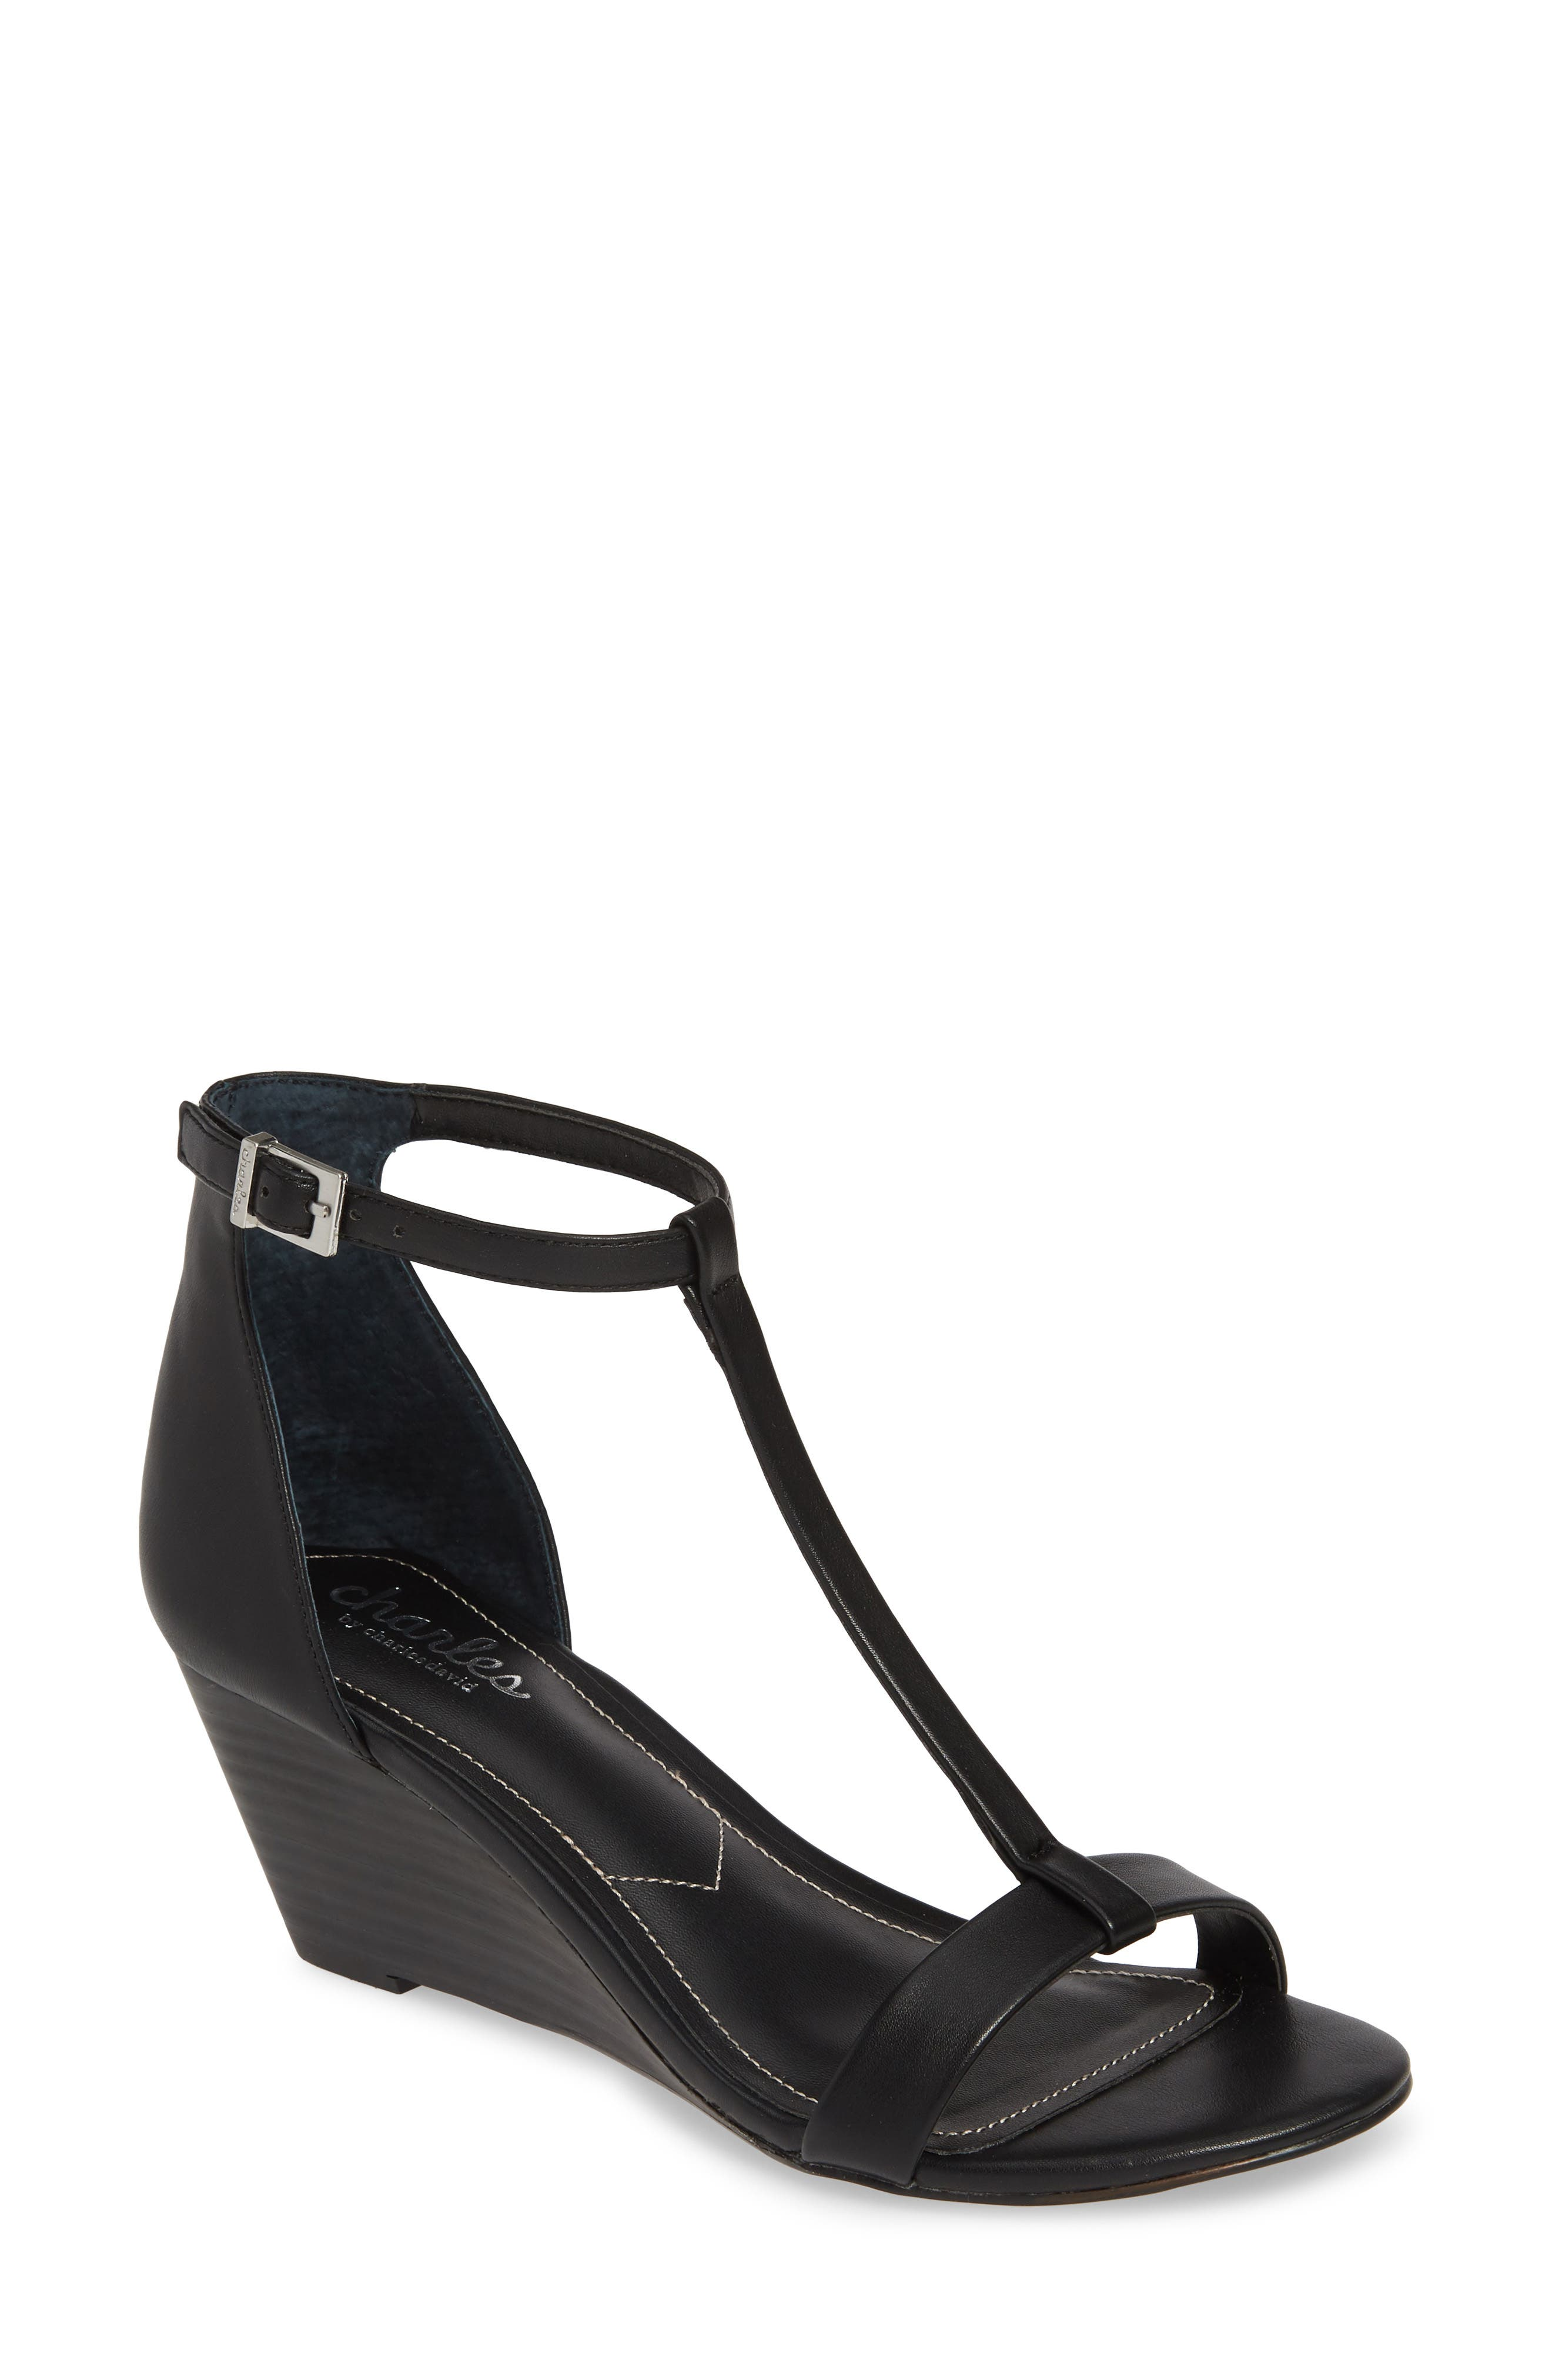 CHARLES BY CHARLES DAVID, Georgette Wedge Sandal, Main thumbnail 1, color, BLACK FAUX LEATHER